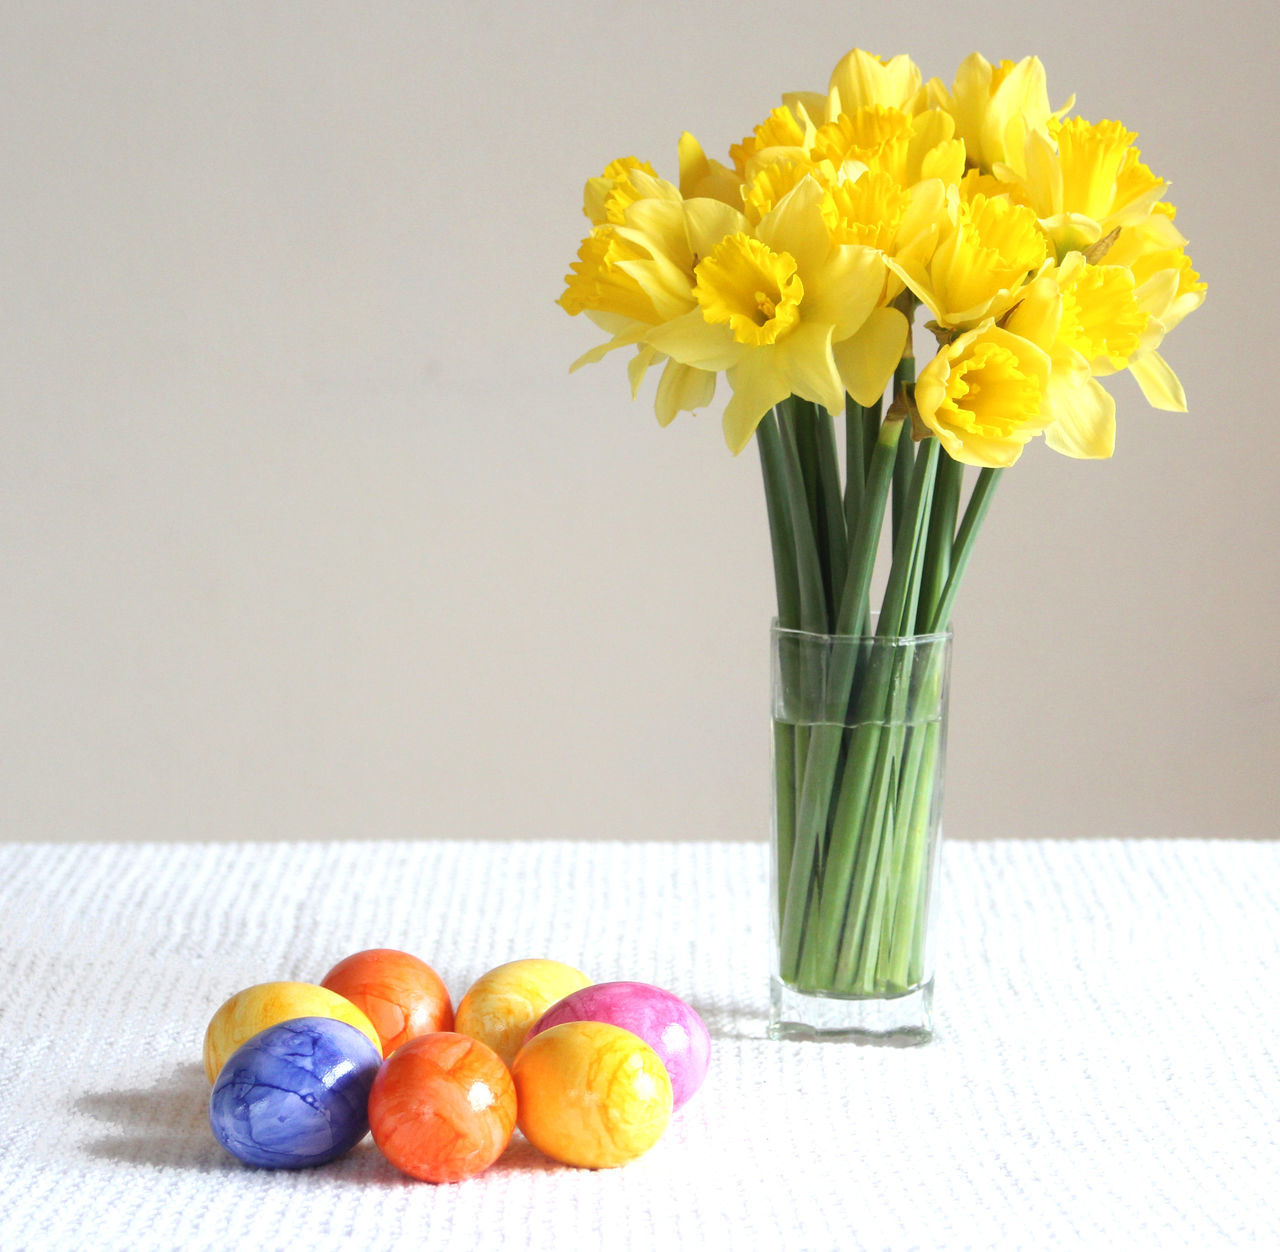 Happy Easter! daffodils and colored eggs Flower Yellow Freshness Fragility Vase Nature Flower Head Indoors  Arrangement Close-up Beauty In Nature No People Flower Arrangement Day Daffodils Spring Flowers Springtime Colored Eggs Easter Eggs Easter Decoration Colorful Celebration Table Copy Space